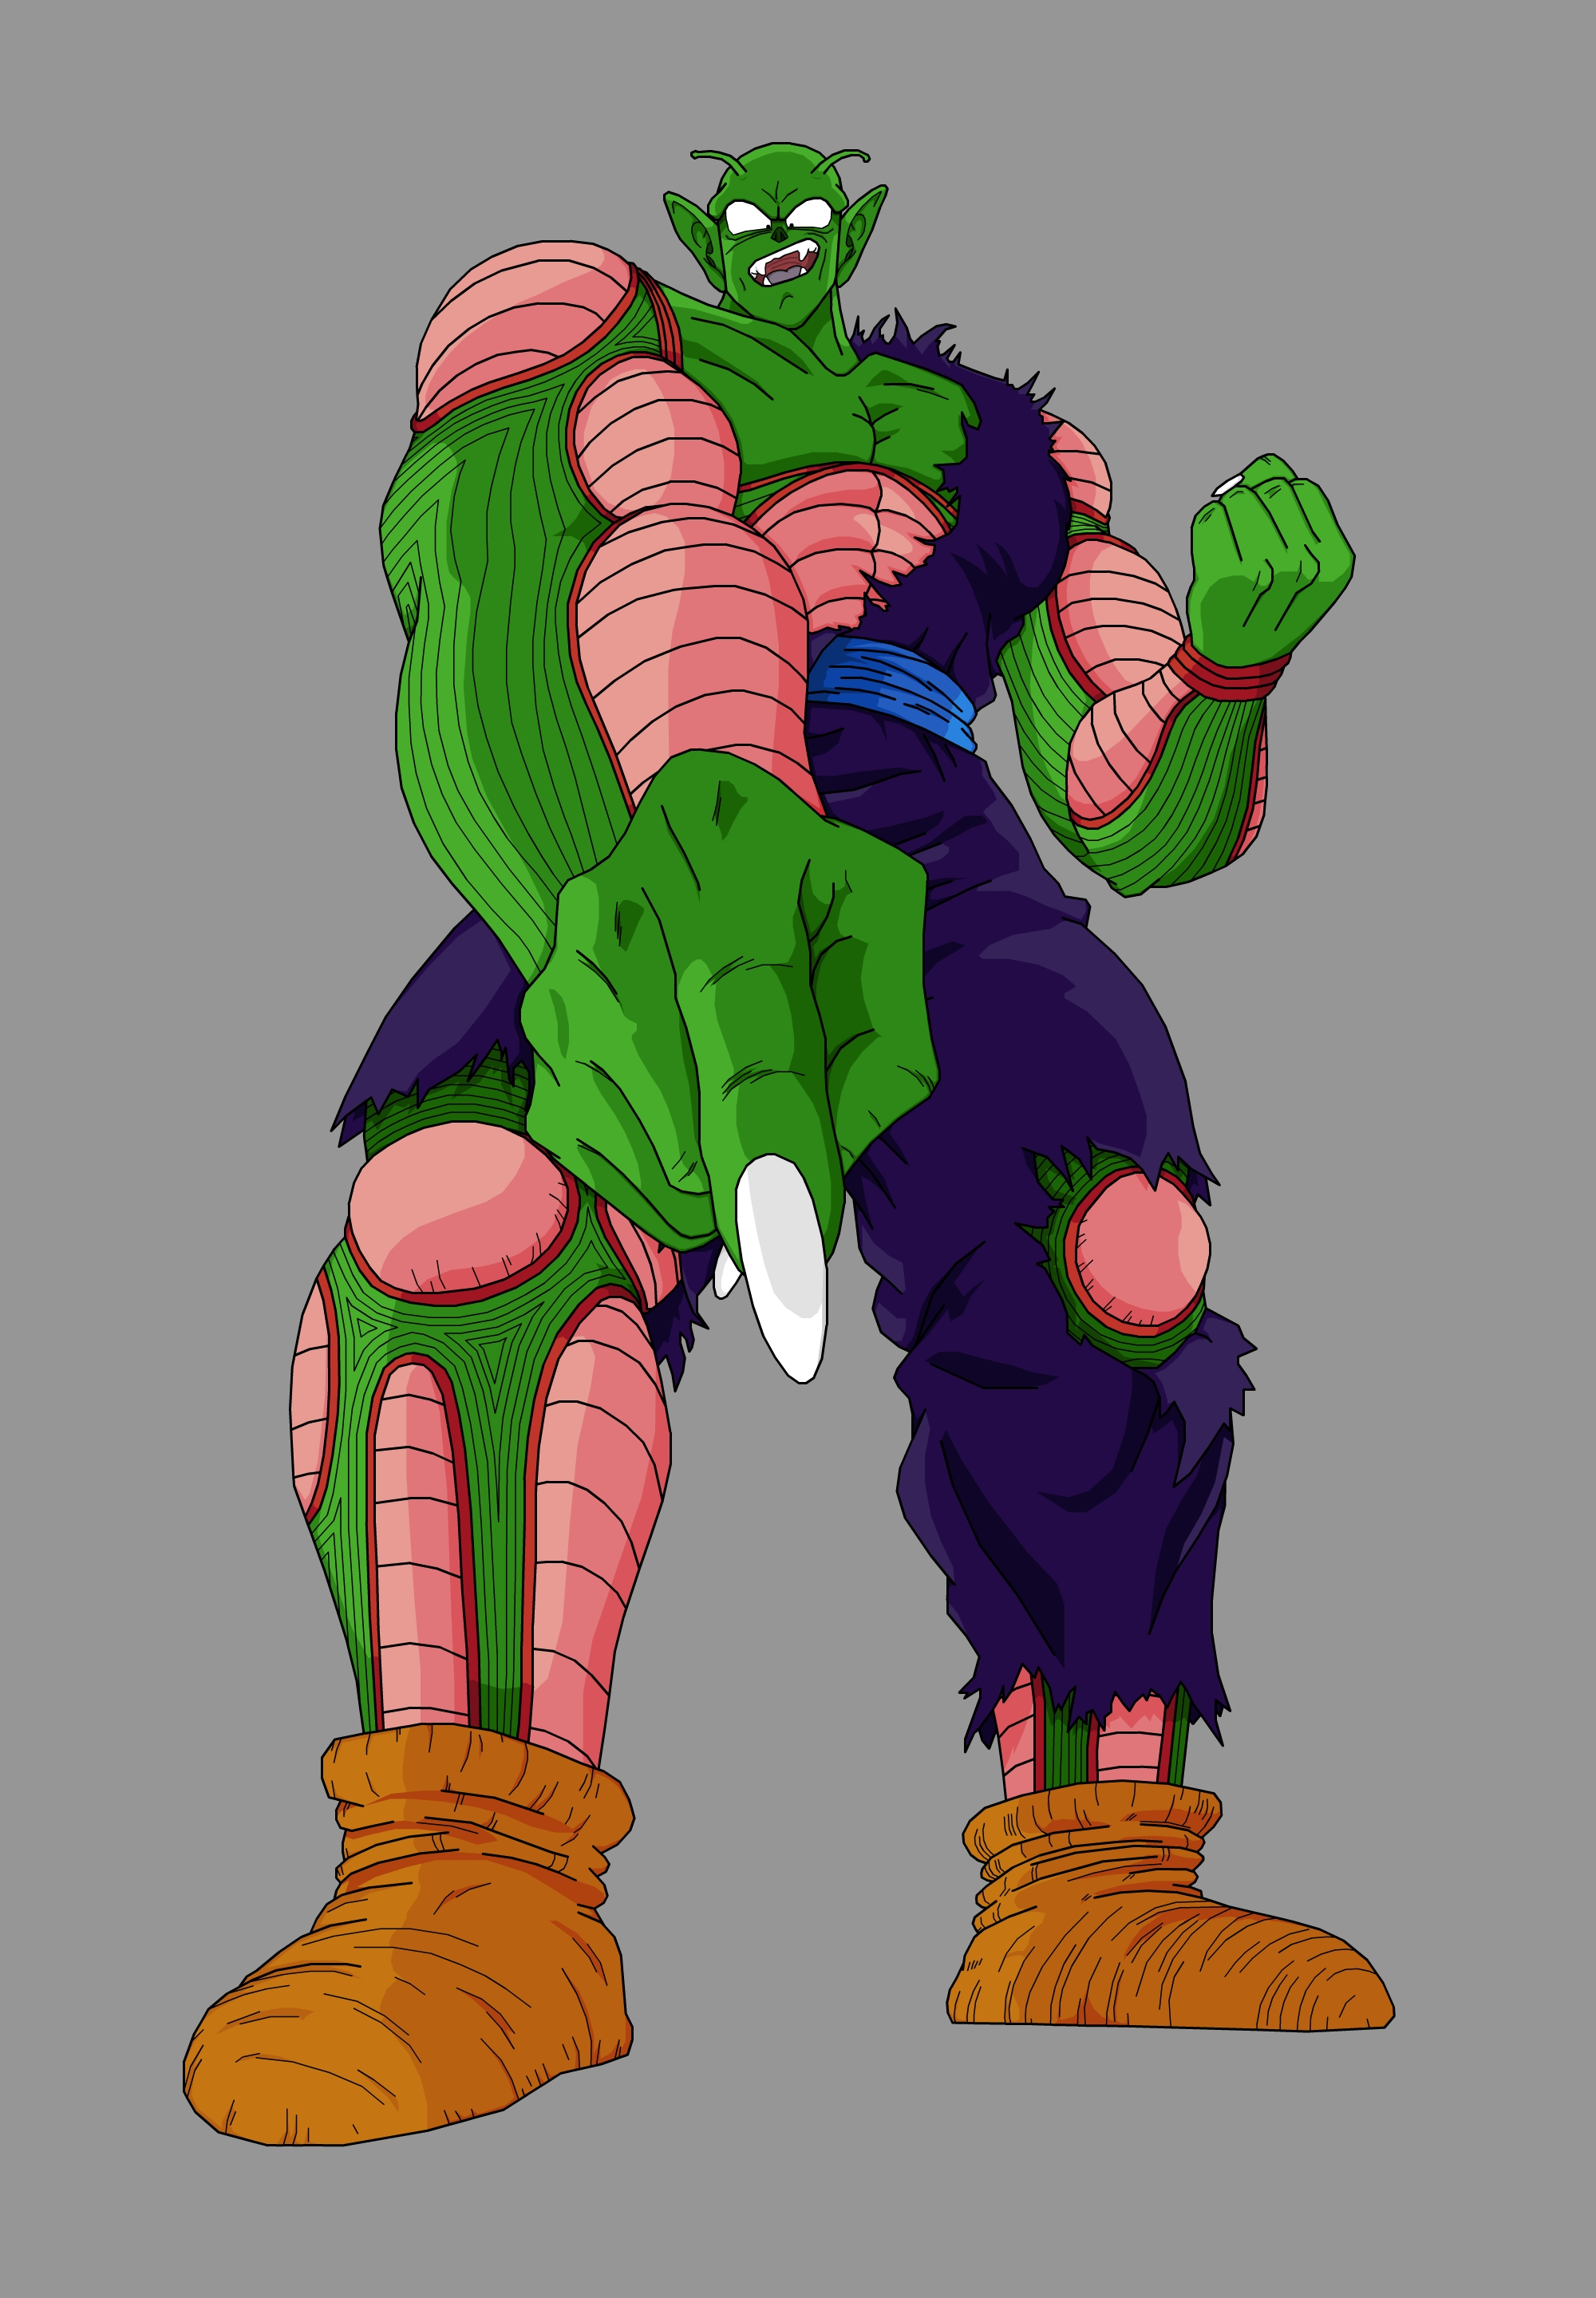 Piccolo Jr. - Super Giant Form by Rexobias on DeviantArt